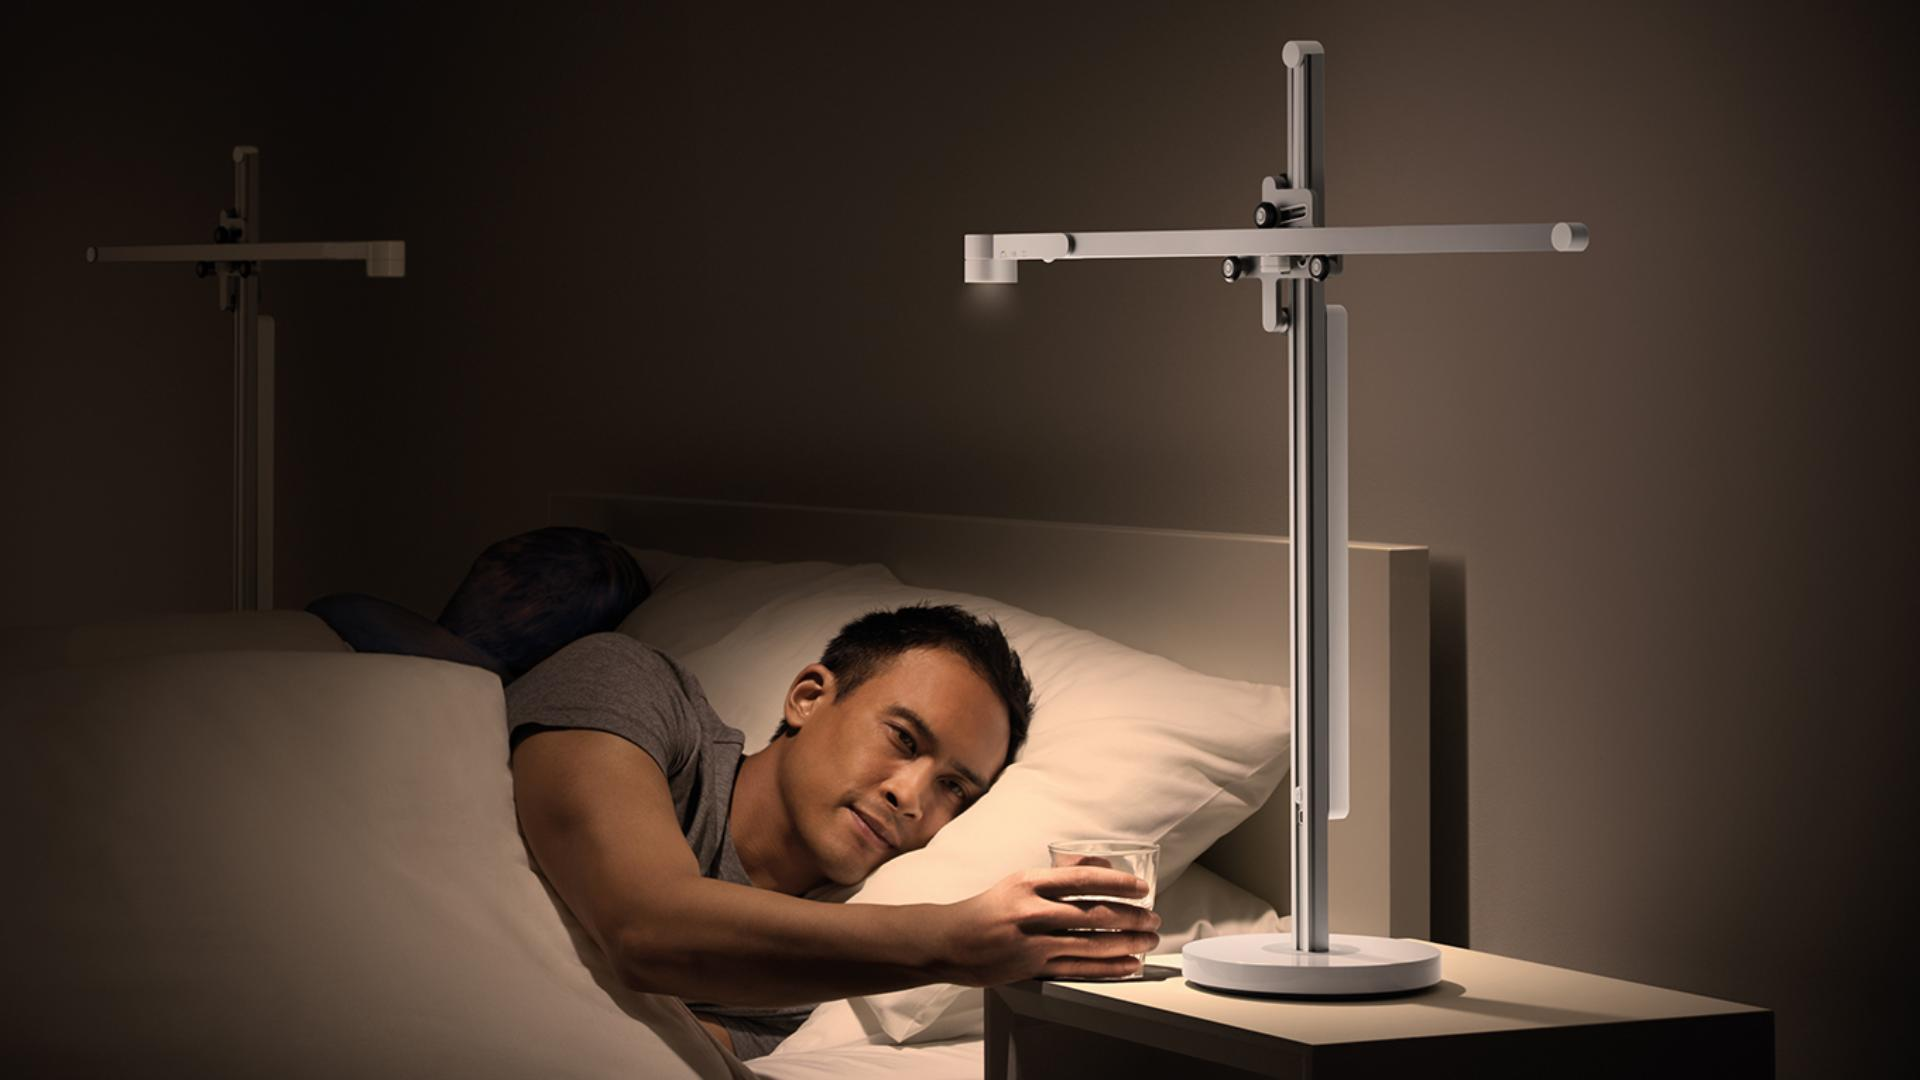 Man waking up under the Dyson Lightcycle task light